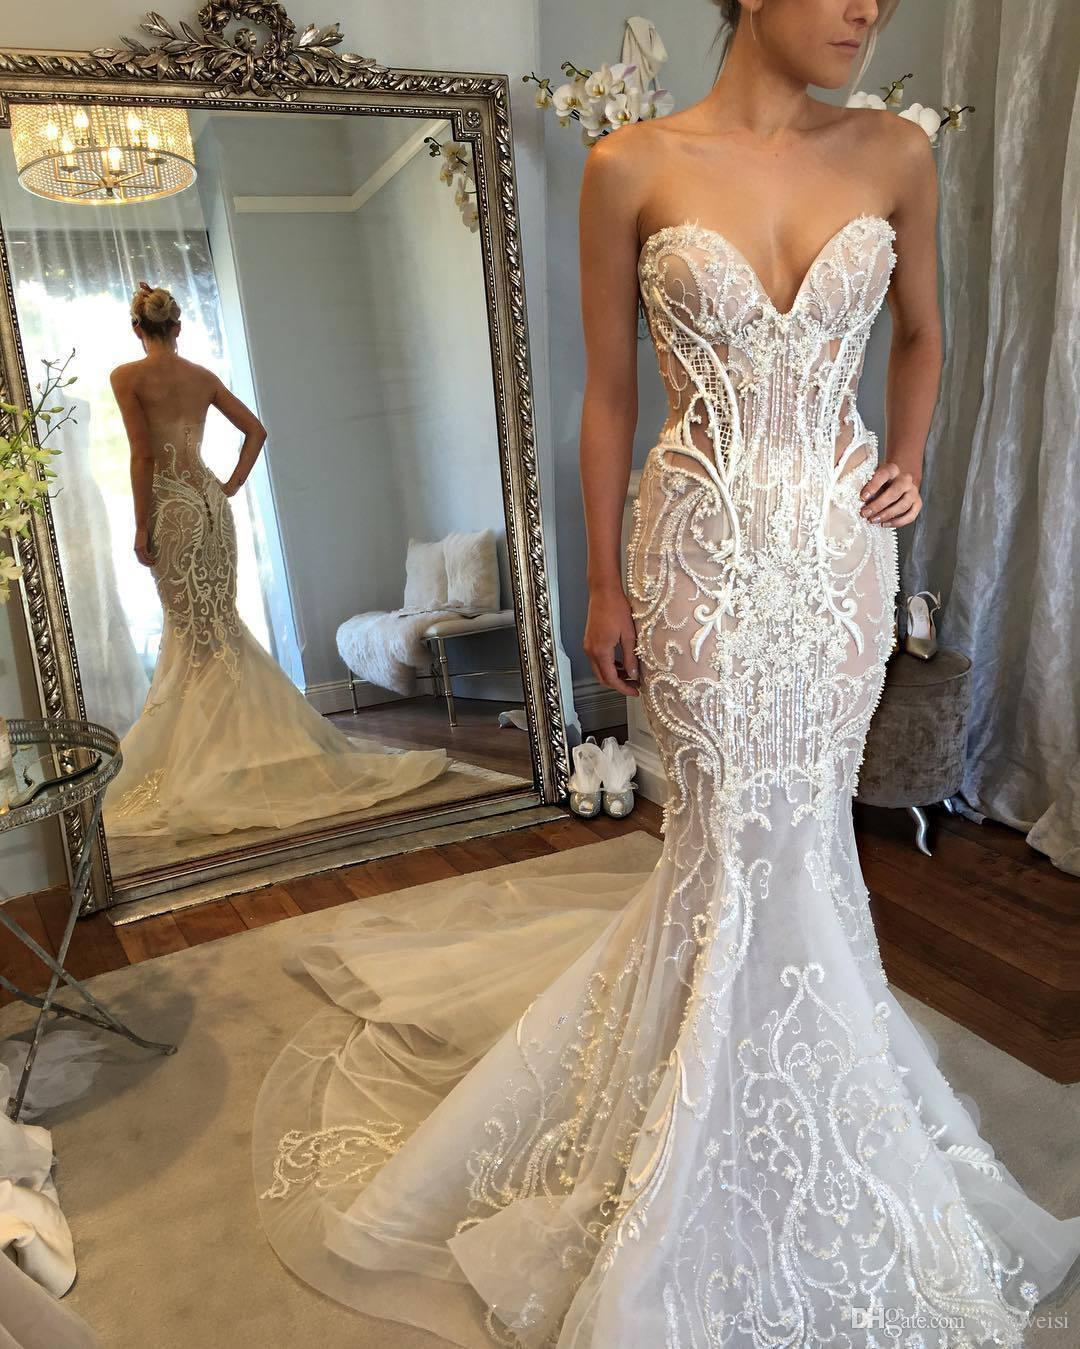 Sexy Backless Mermaid Wedding Dresses With Jacket Sweetheart Lace Appliqued Beads Hottest Bridal Gowns Sleeveless Illusion Wedding Dress